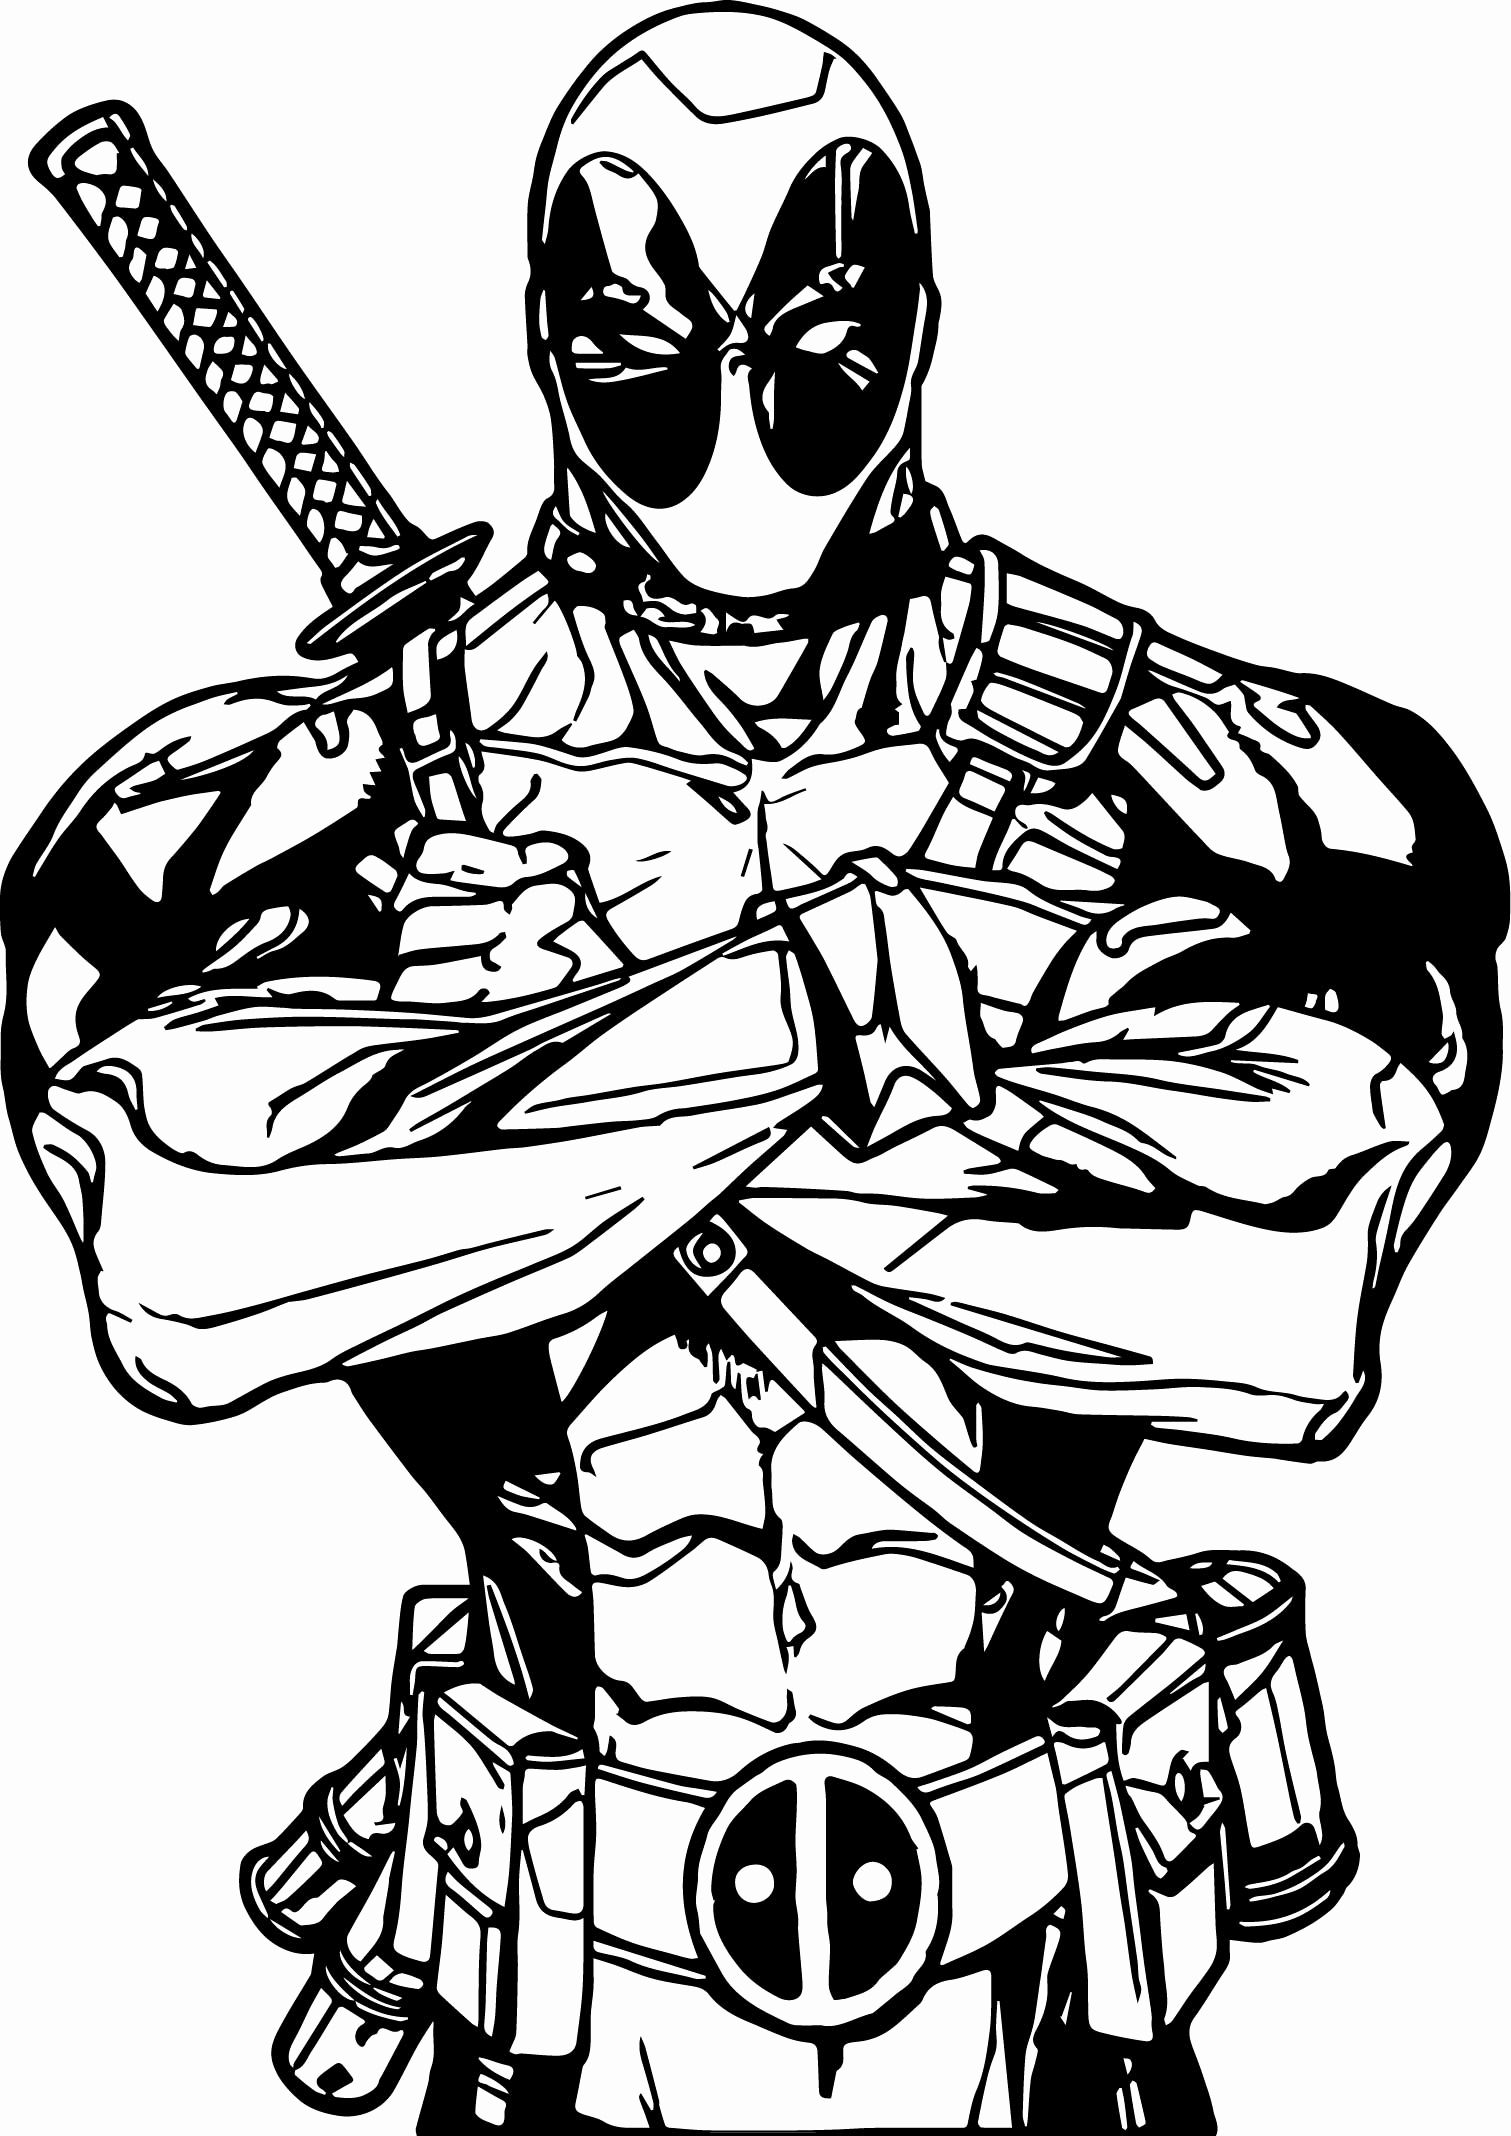 Kids Superhero Printable Coloring Pages In 2020 Avengers Coloring Pages Avengers Coloring Superhero Coloring Pages